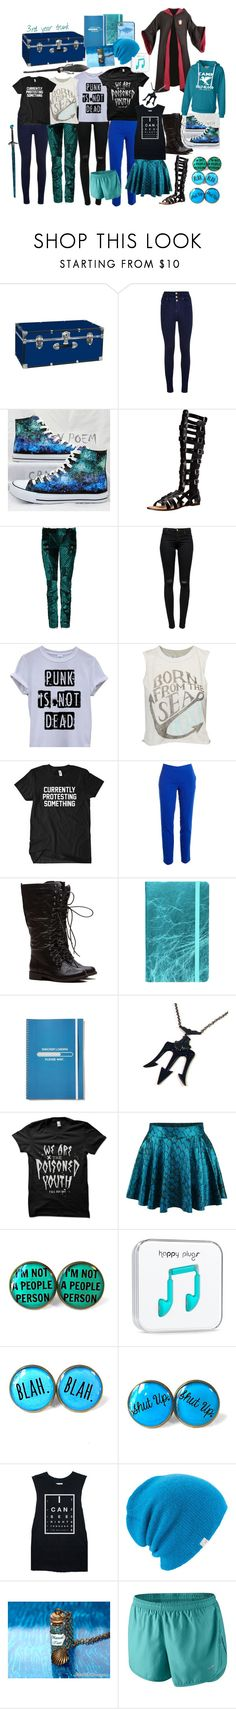 """Daughter of Poseidon at Hogwarts"" by half-blood-outfits ❤ liked on Polyvore featuring Converse, Madden Girl, Balmain, J Brand, Vince Camuto, Topshop, Coal, Disney and NIKE"